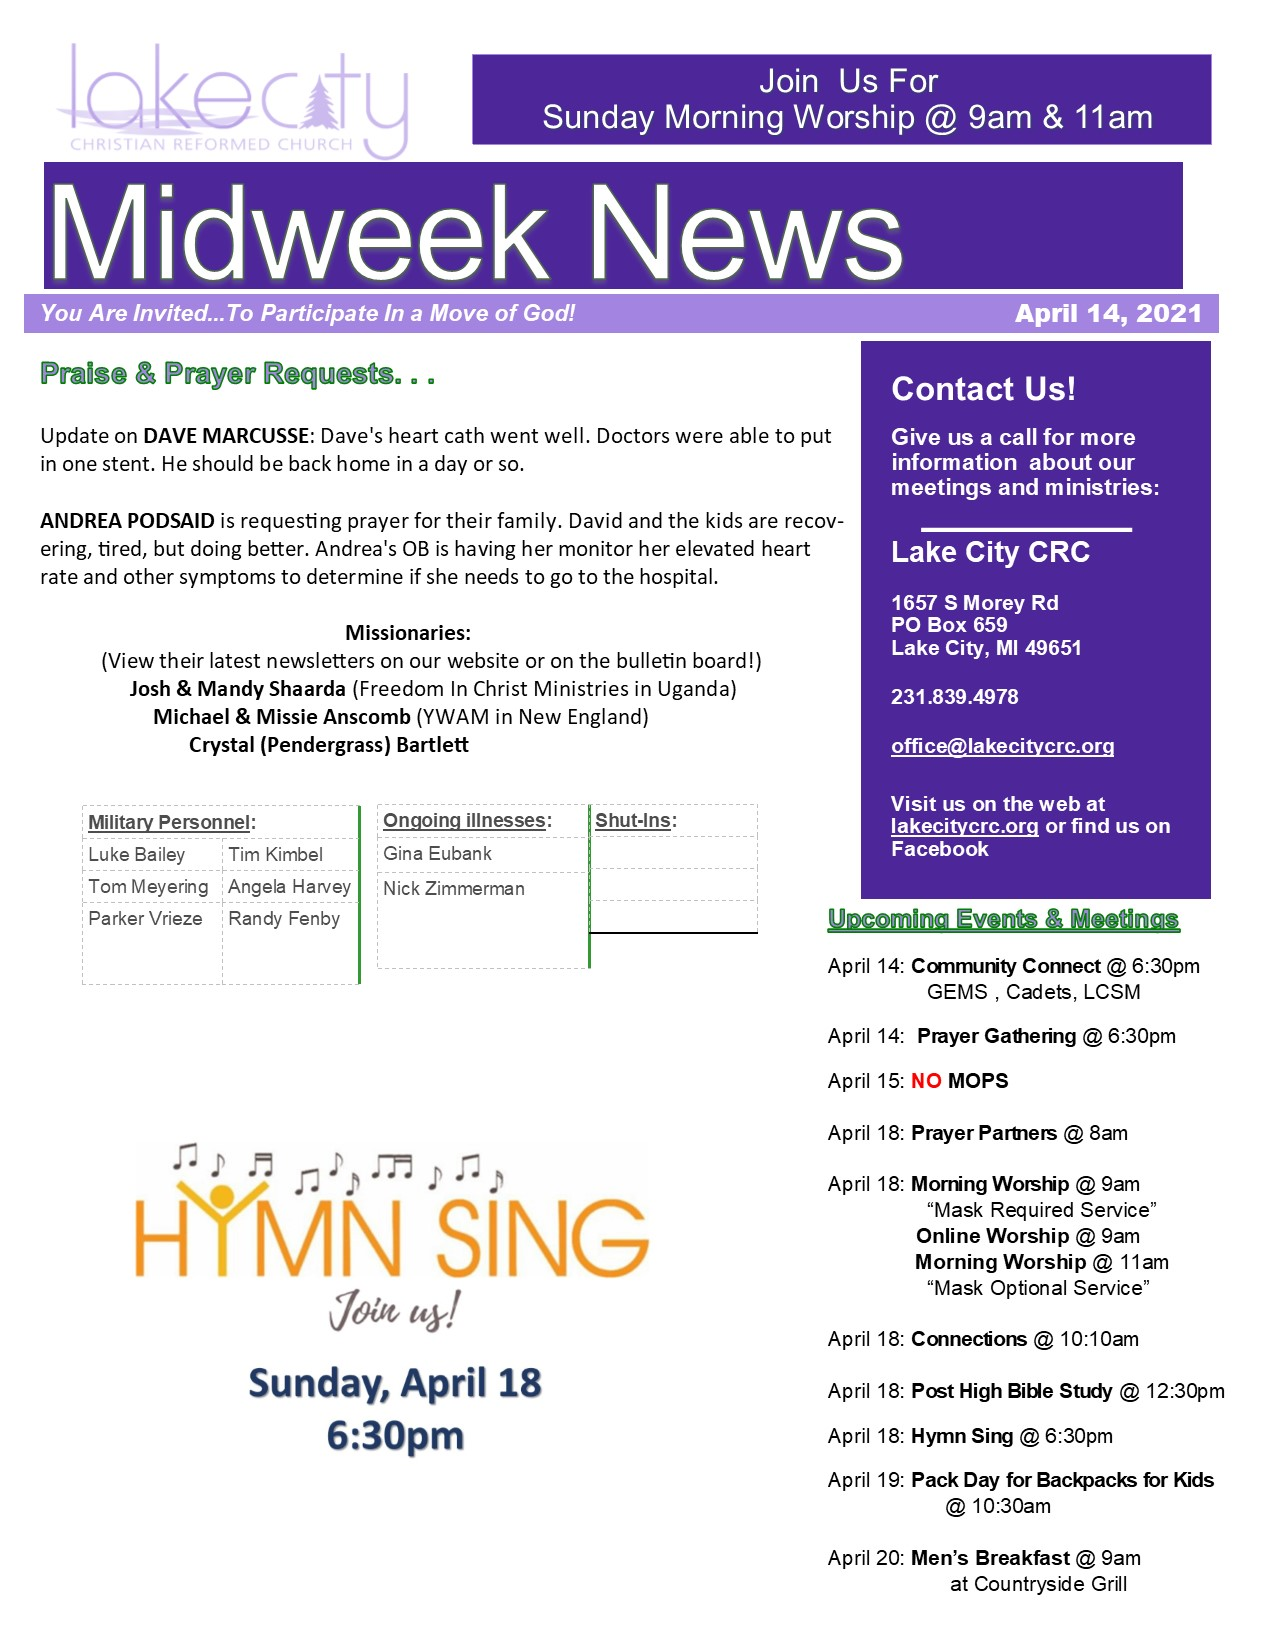 April 14, 2021 Mid-Week News